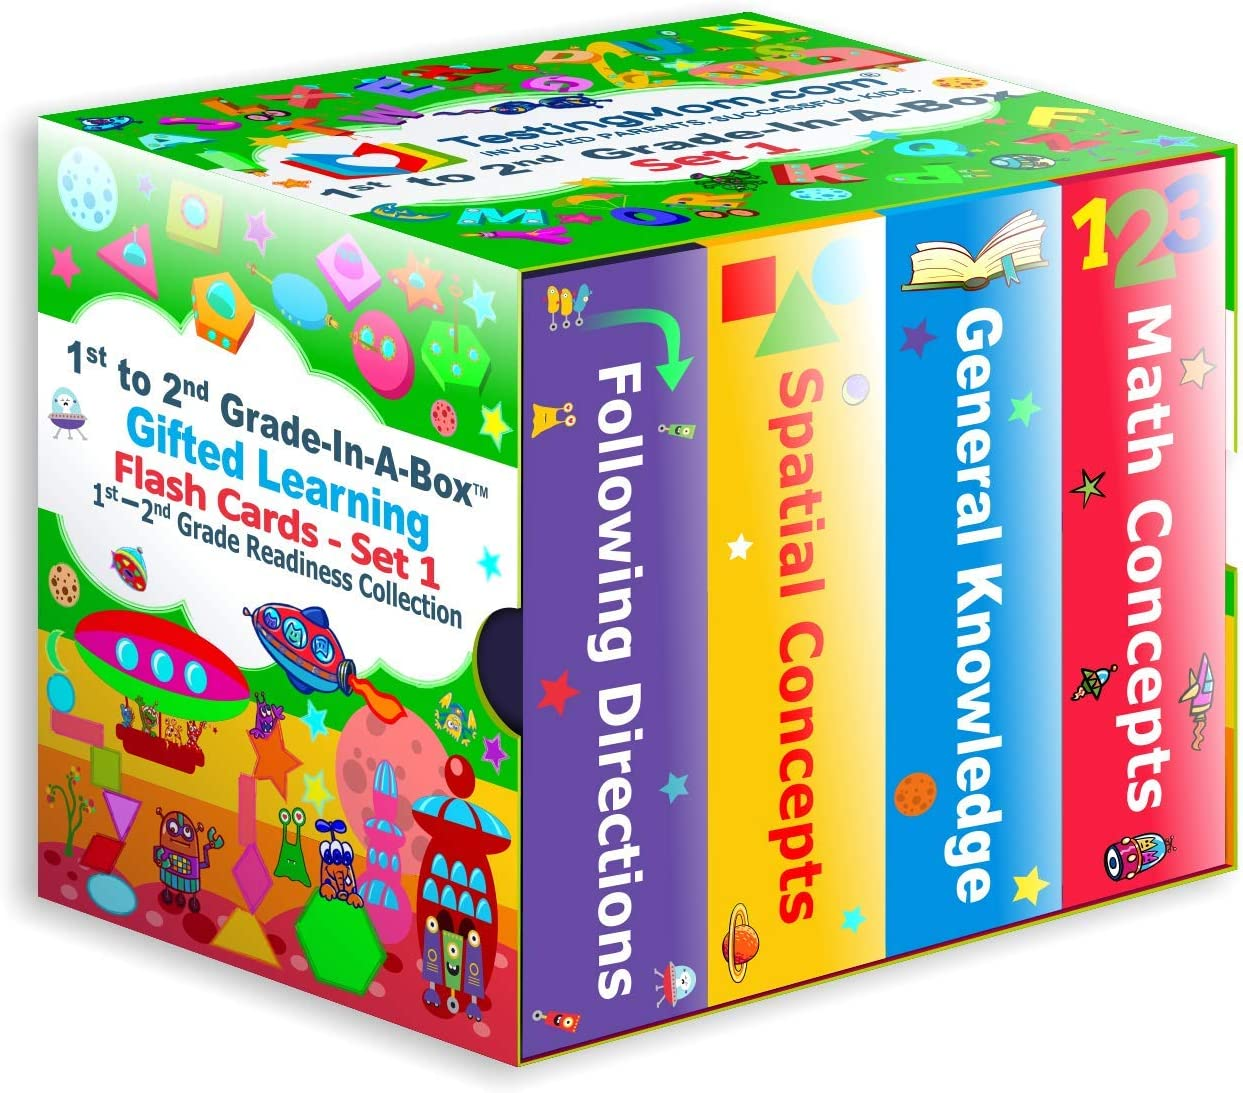 Knowledge NNAT Gifted Learning Flash Cards Bundle Gifted and Talented Test Prep for Grade 1-2 CogAT Following Directions Spatial Concepts TestingMom.com 1st to 2nd Grade-In-A-Box OLSAT Math